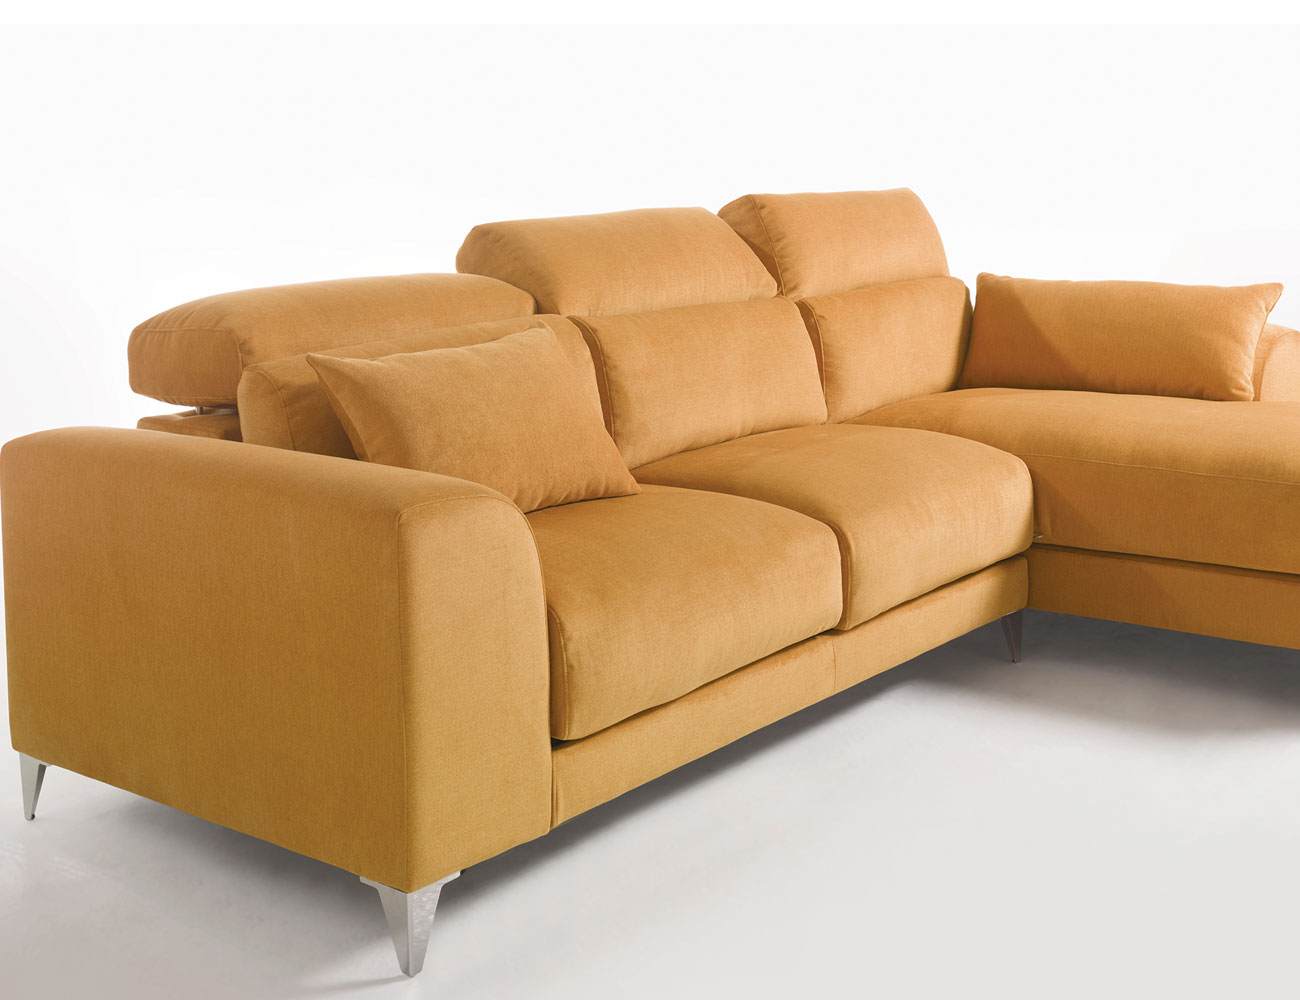 Sofa chaiselongue gran lujo decorativo patas altas amarillo 27